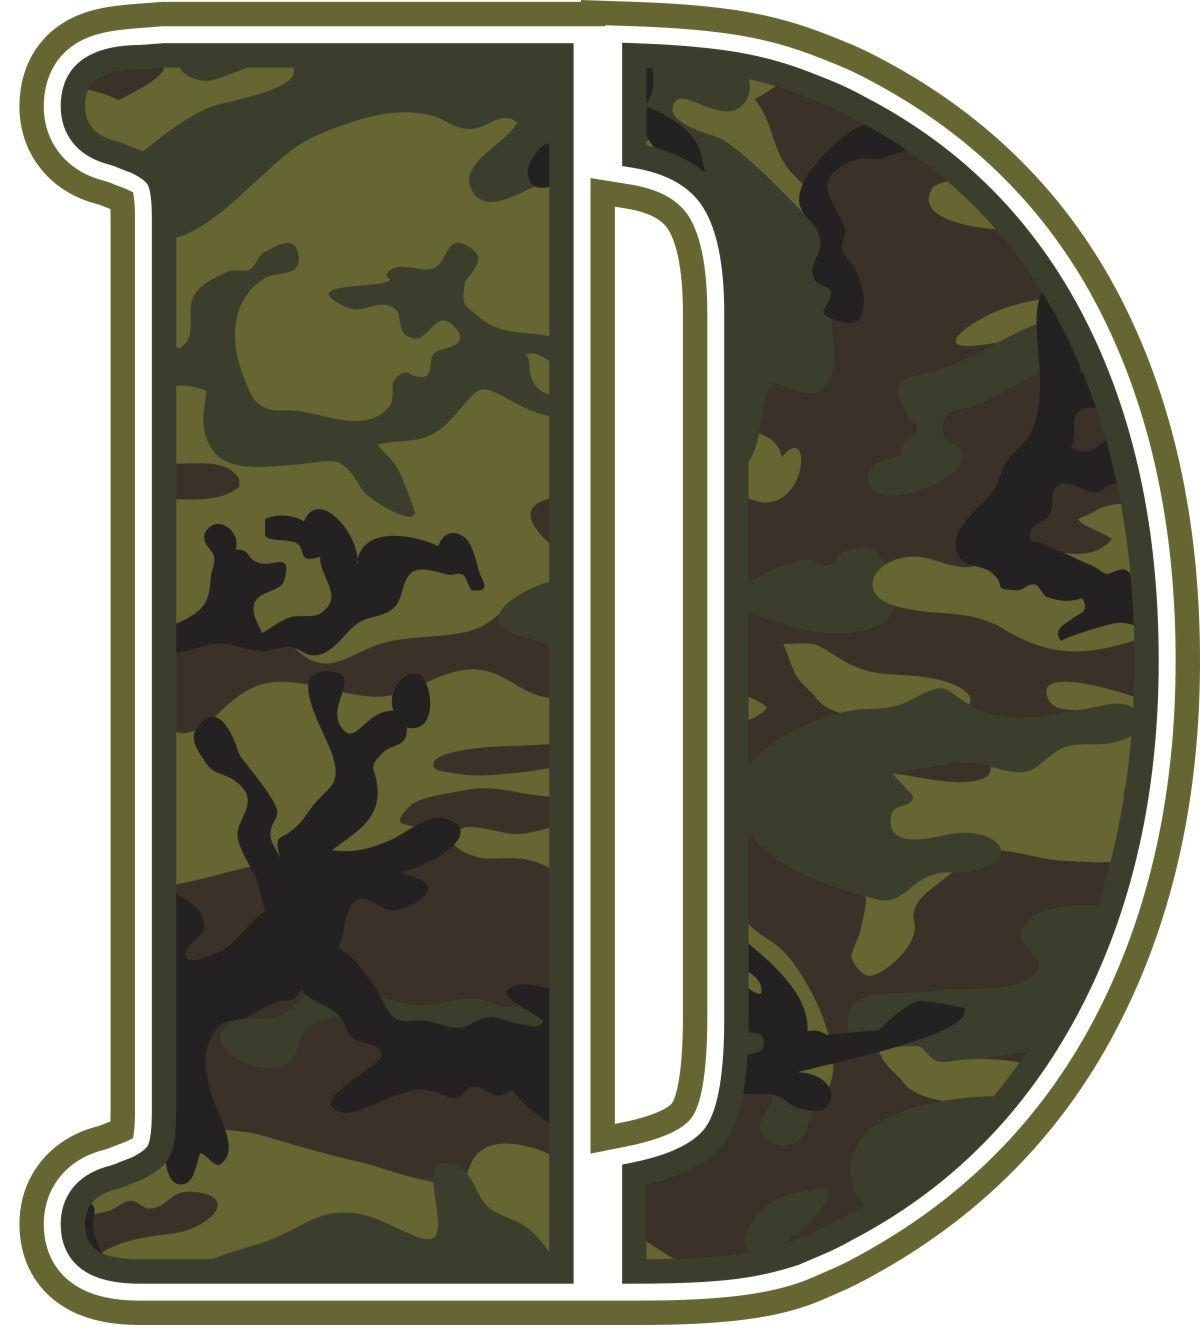 Green Camo Wall Letters | Potty Training Concepts throughout Camouflage Wall Art